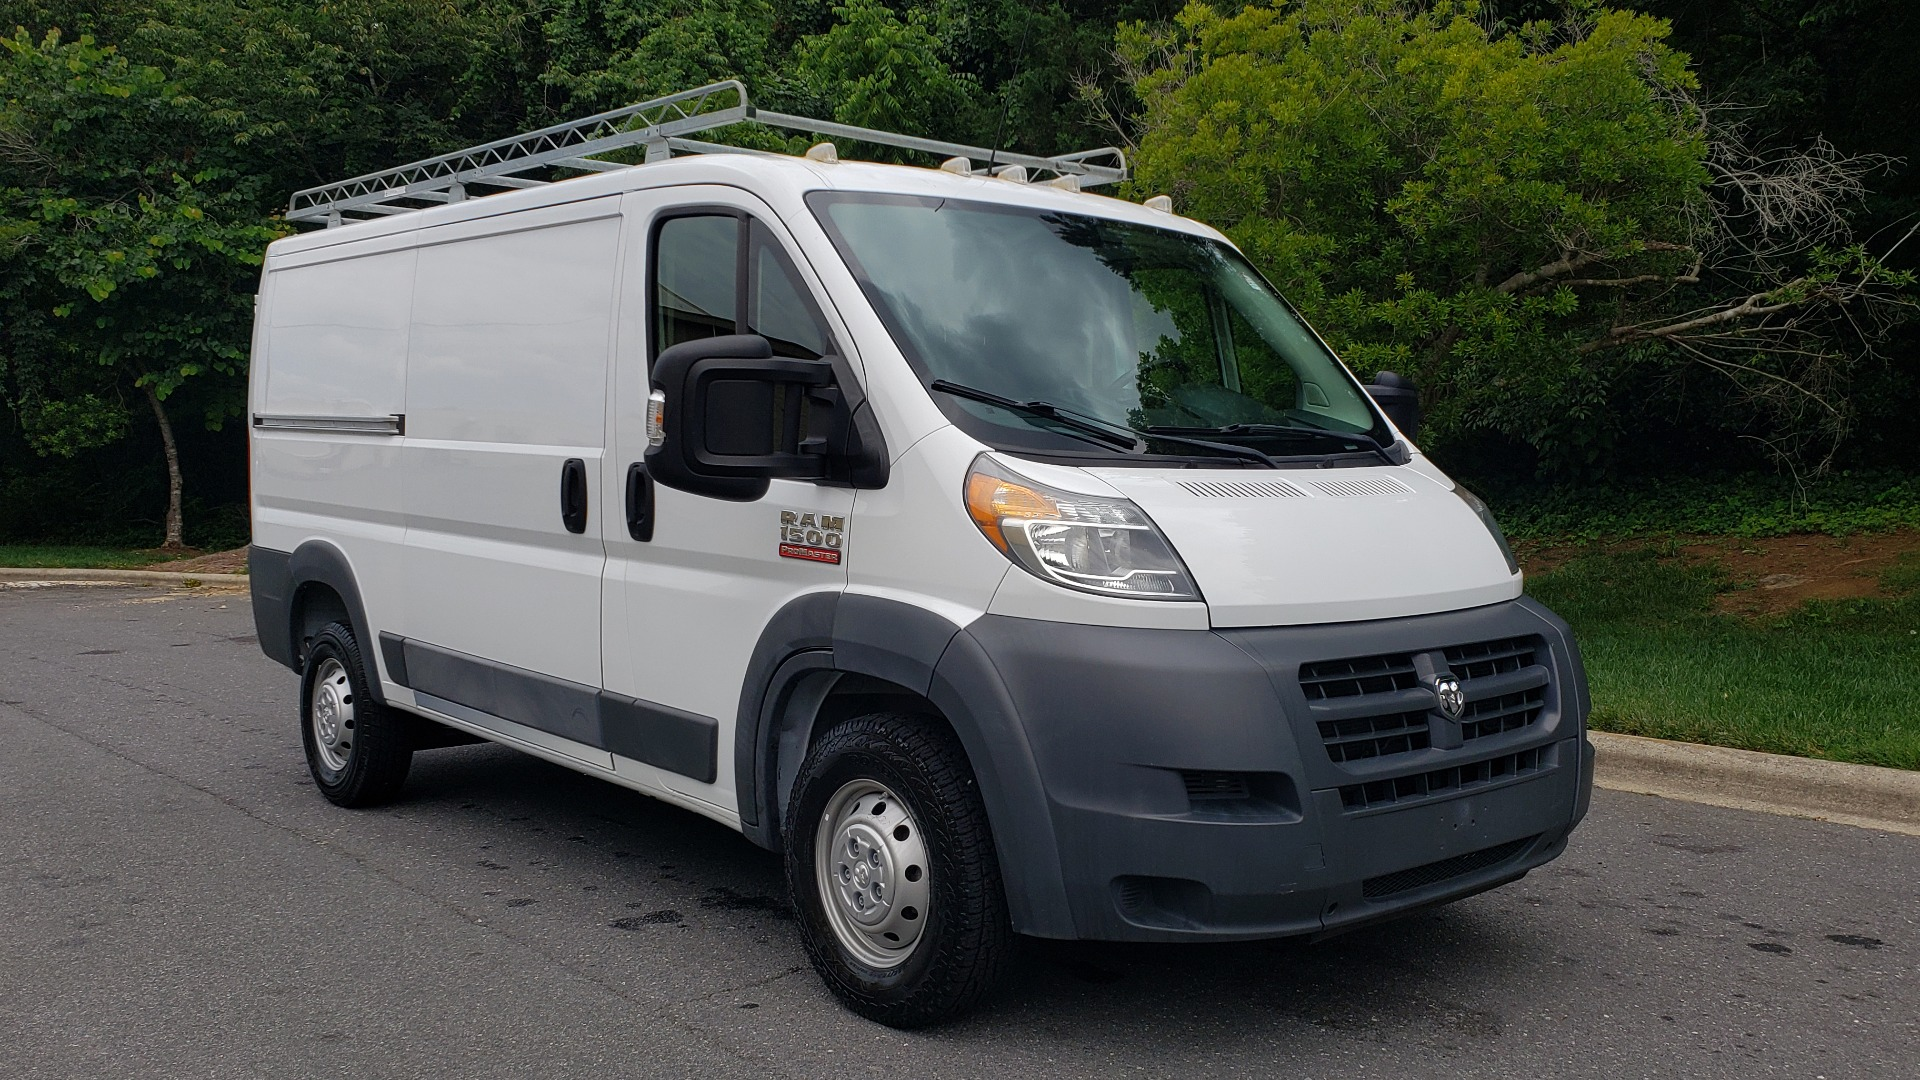 Used 2016 Ram PROMASTER CARGO VAN 136 WB / 3.6L V6 / AUTO / ROOF-RACK / REARVIEW / SEATS 5 for sale $15,995 at Formula Imports in Charlotte NC 28227 4